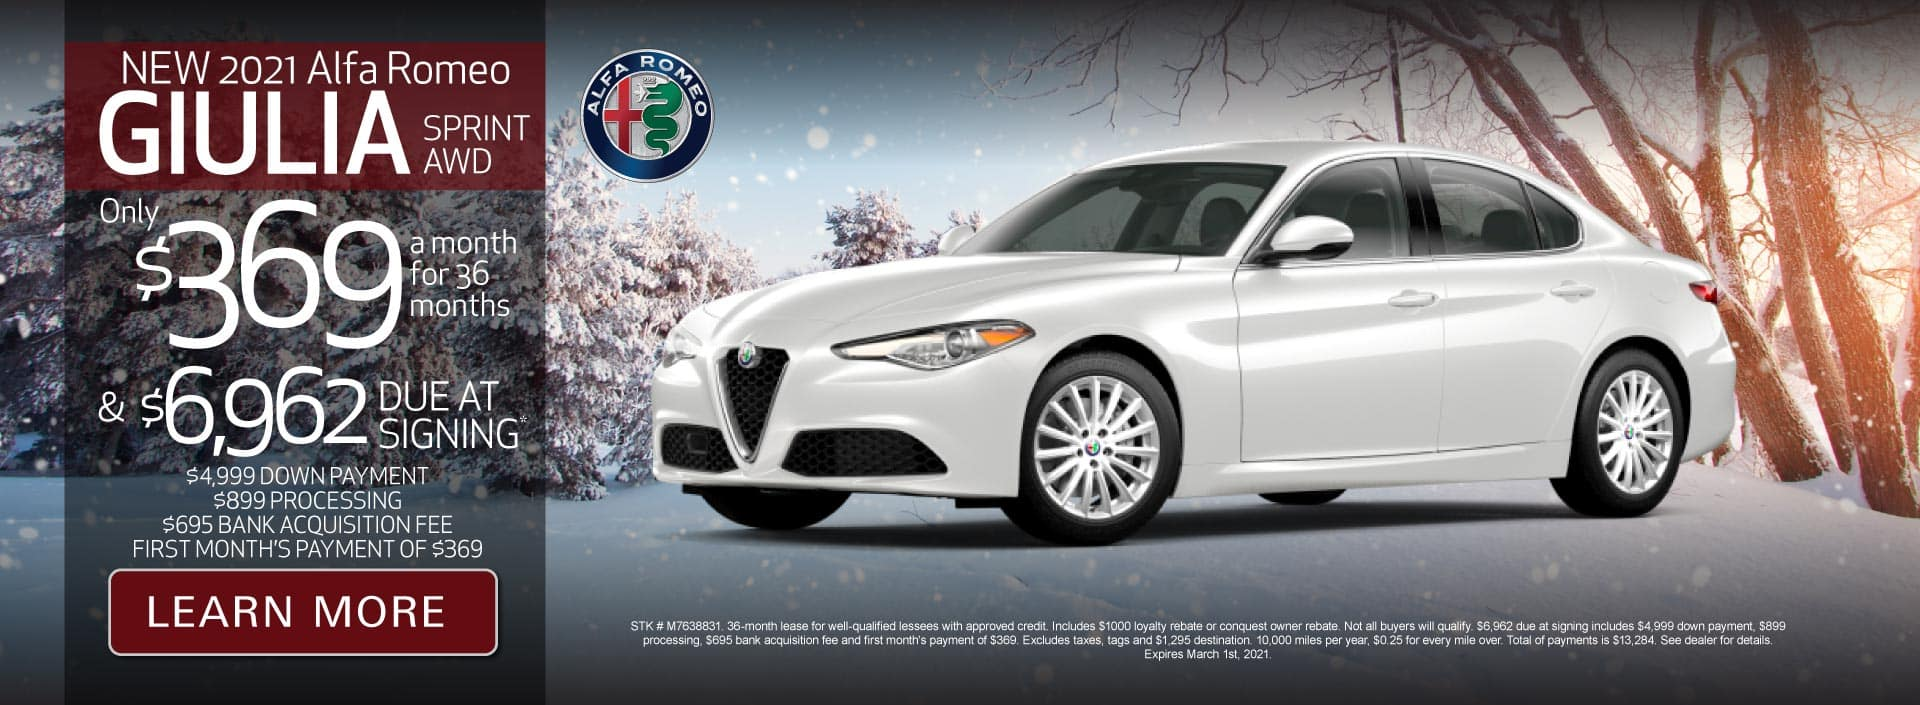 New 2021 Giulia Sprint AWD Only $369 a month for 36 months | Learn More